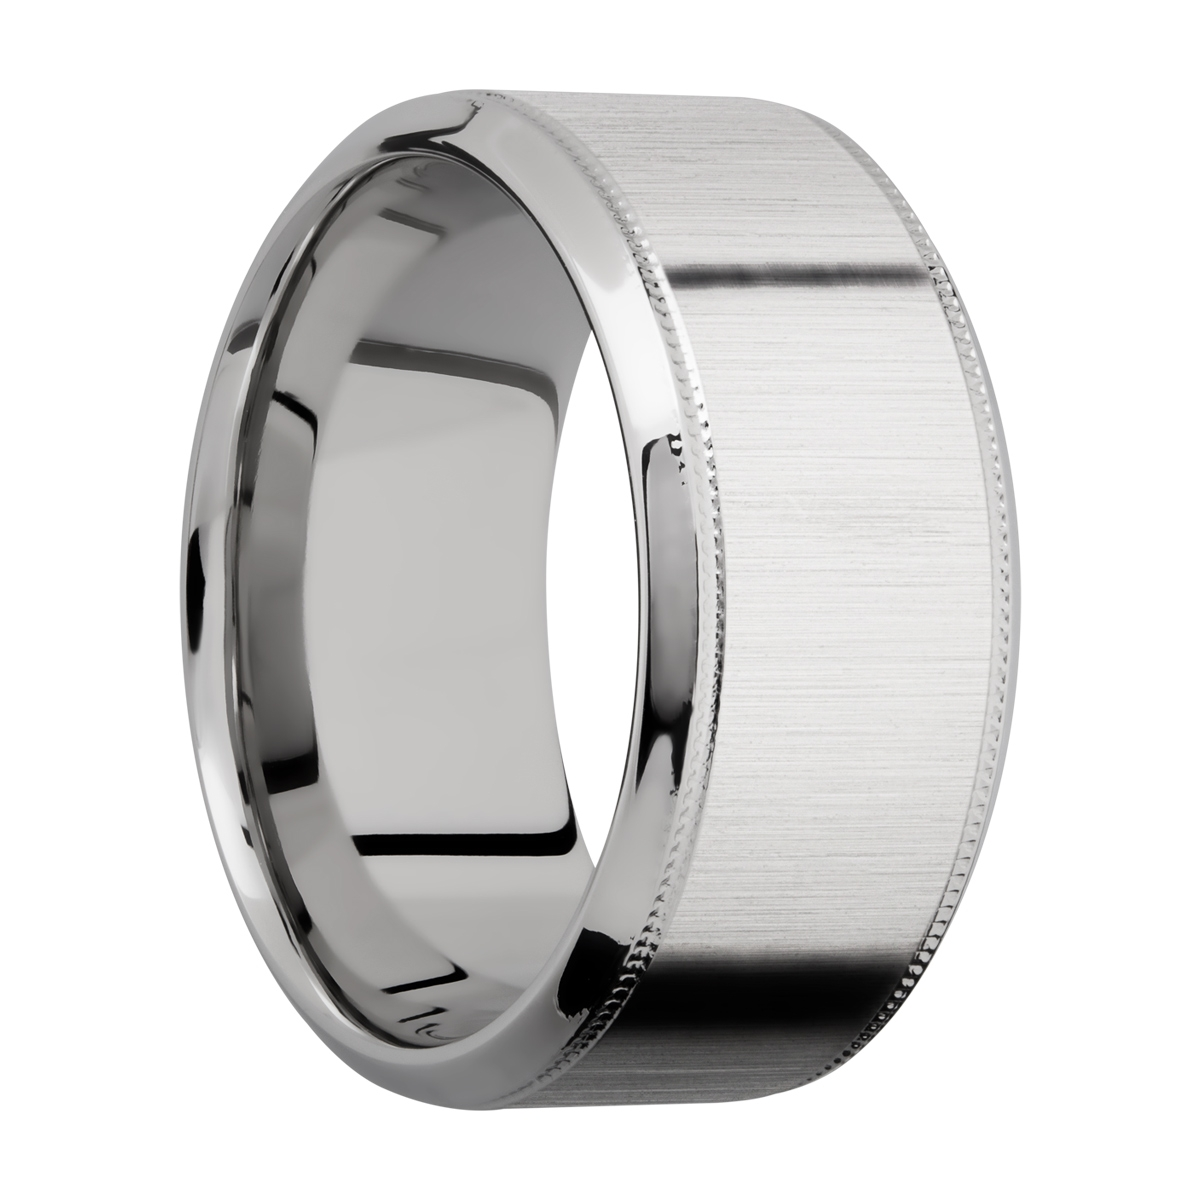 Lashbrook CC10HB2UMIL Cobalt Chrome Wedding Ring or Band Alternative View 1